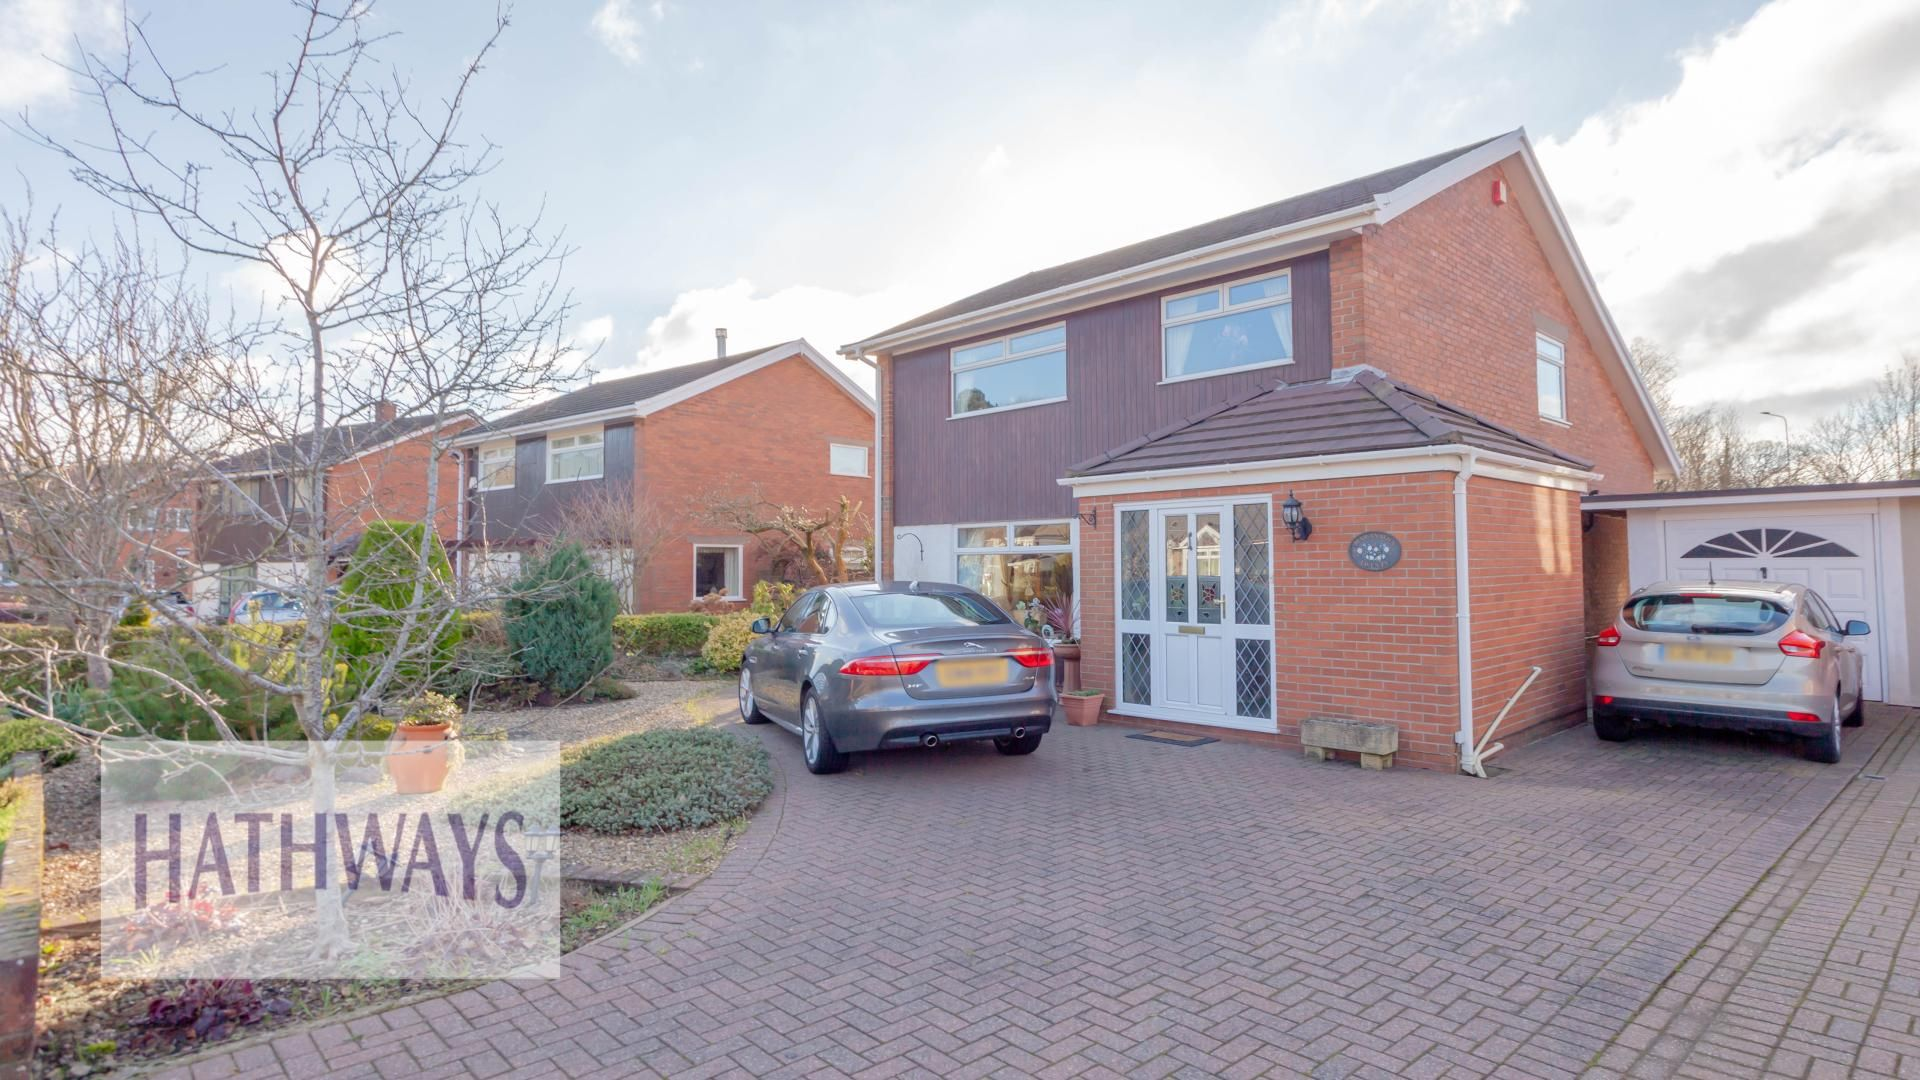 4 bed house for sale in The Alders - Property Image 1